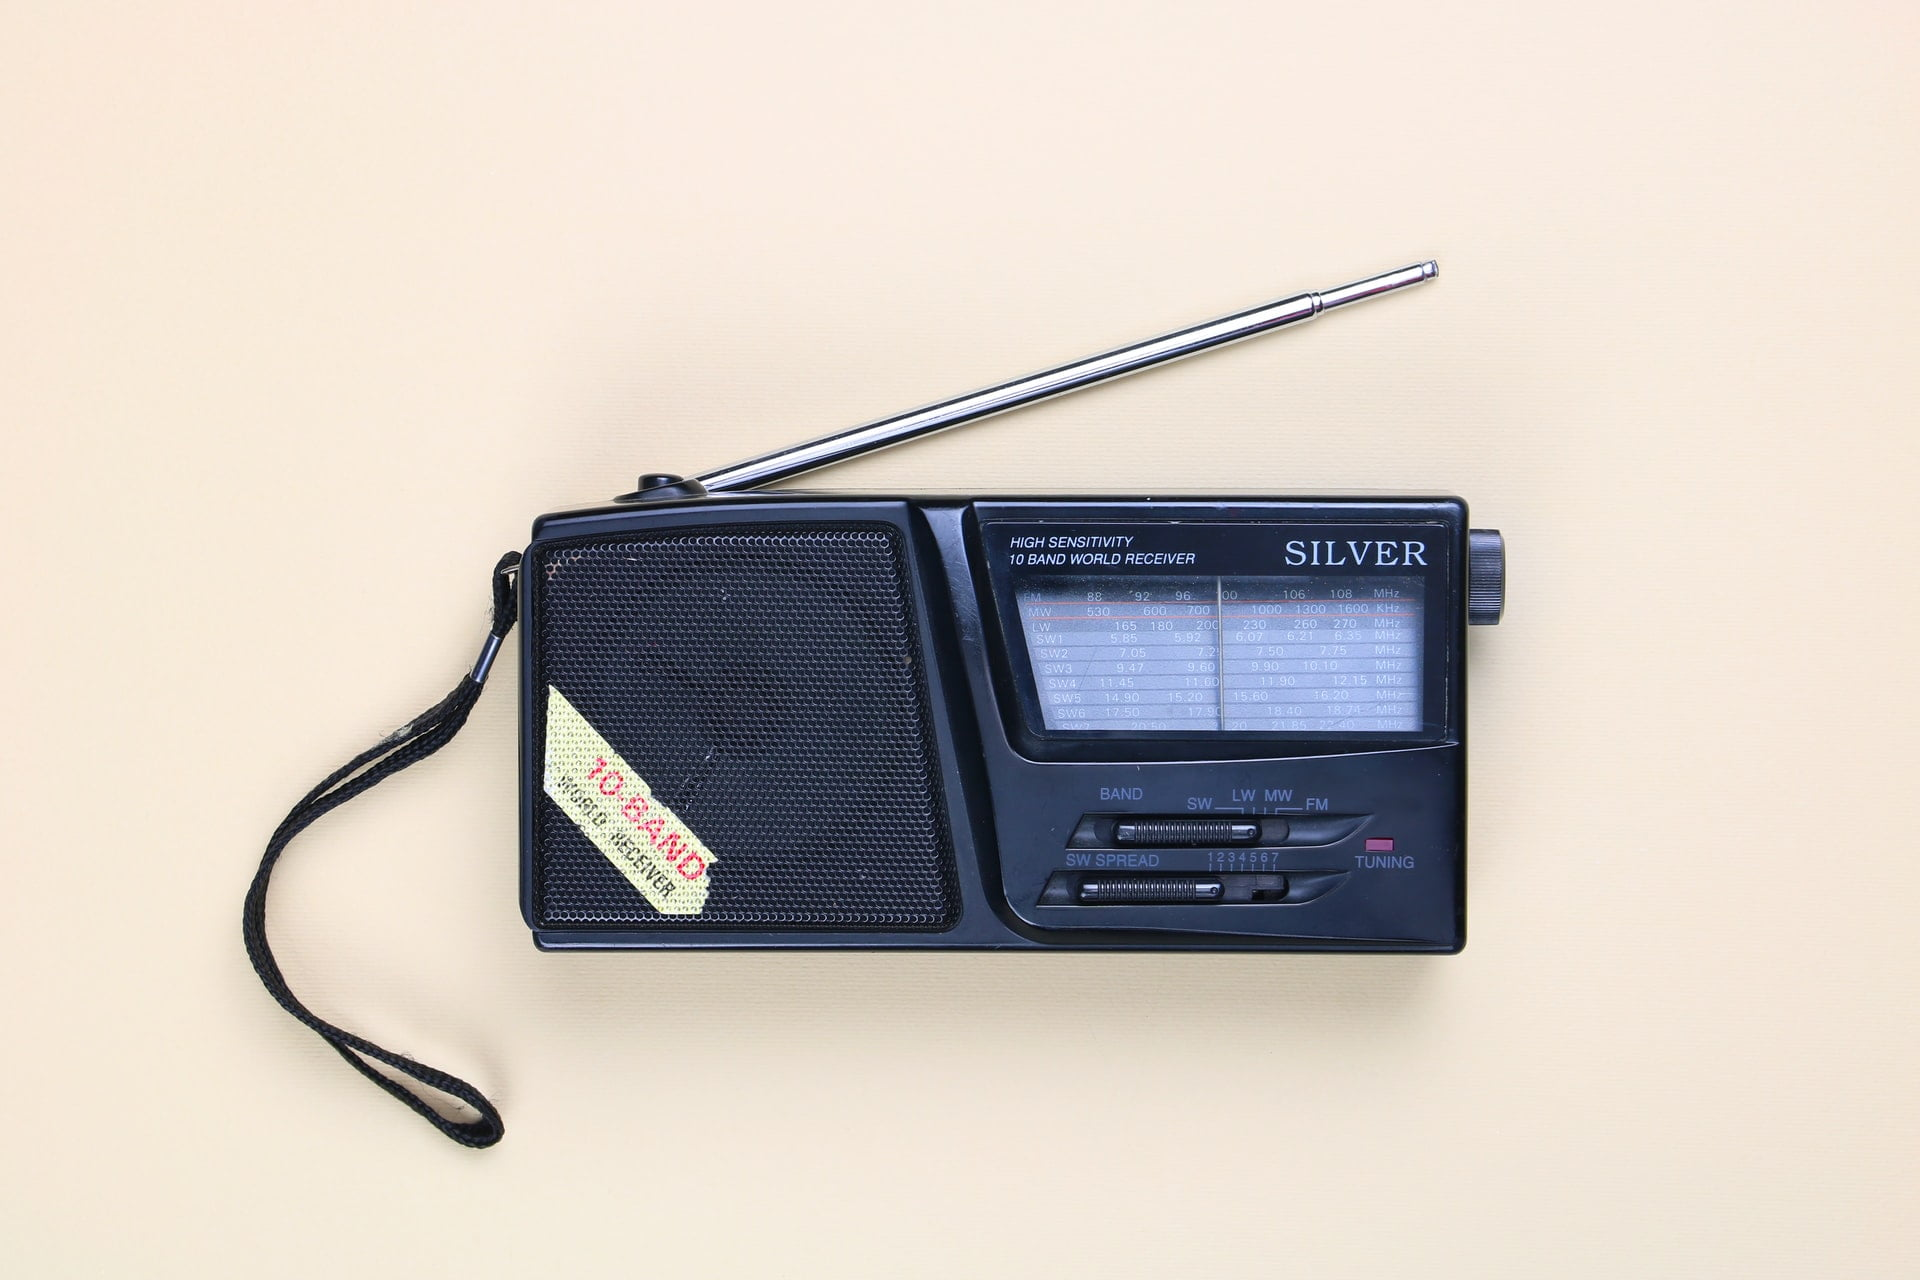 5 best AM radios for long-distance reception